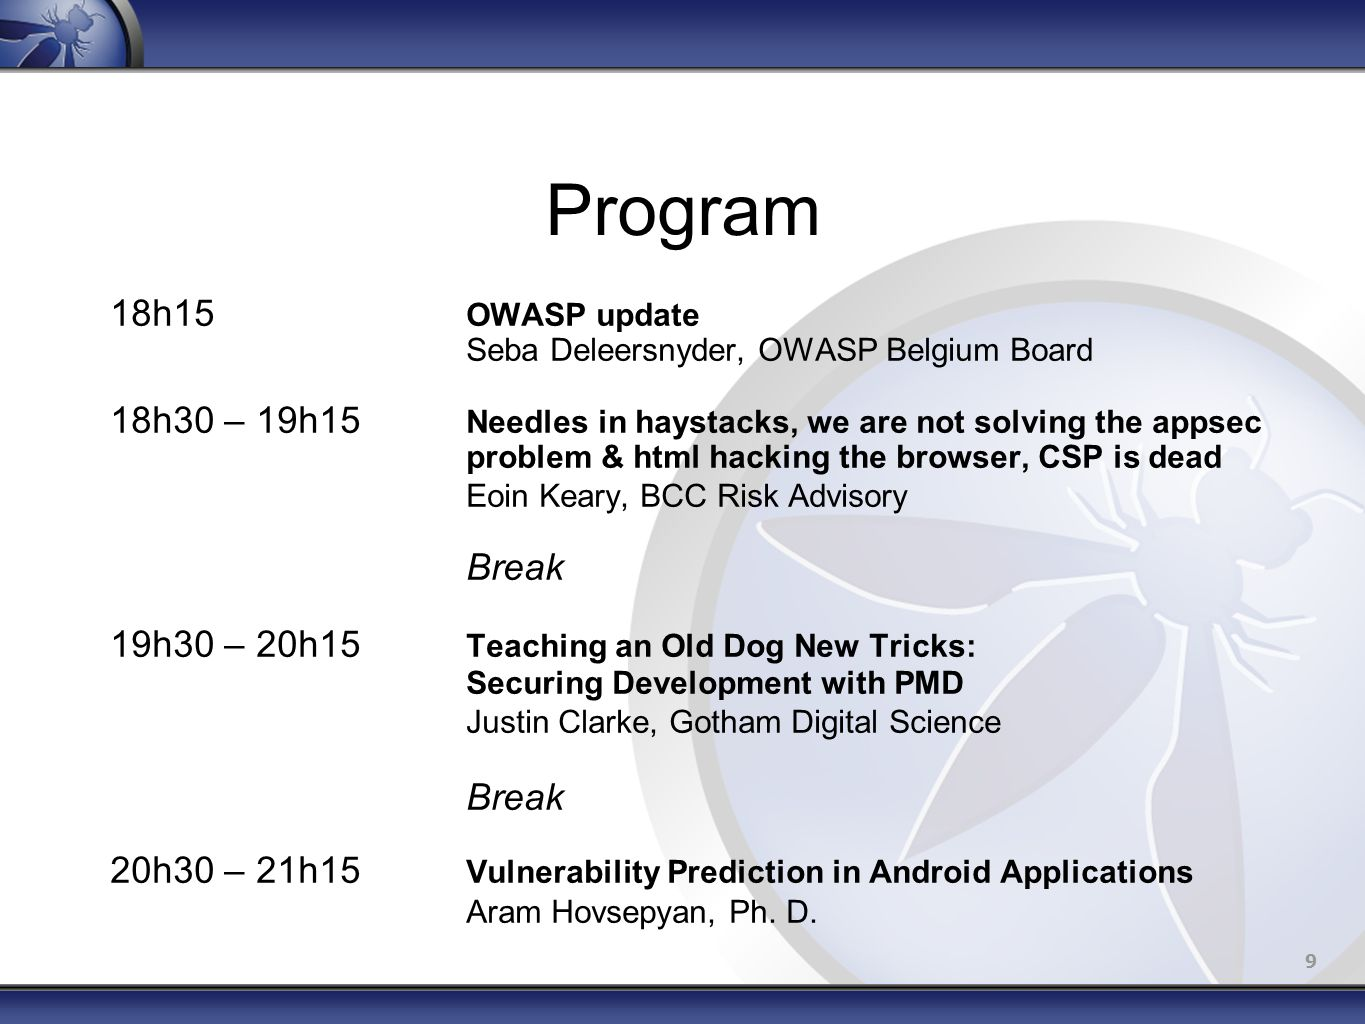 9 Program 18h15 OWASP update Seba Deleersnyder, OWASP Belgium Board 18h30 – 19h15 Needles in haystacks, we are not solving the appsec problem & html hacking the browser, CSP is dead Eoin Keary, BCC Risk Advisory Break 19h30 – 20h15 Teaching an Old Dog New Tricks: Securing Development with PMD Justin Clarke, Gotham Digital Science Break 20h30 – 21h15 Vulnerability Prediction in Android Applications Aram Hovsepyan, Ph.